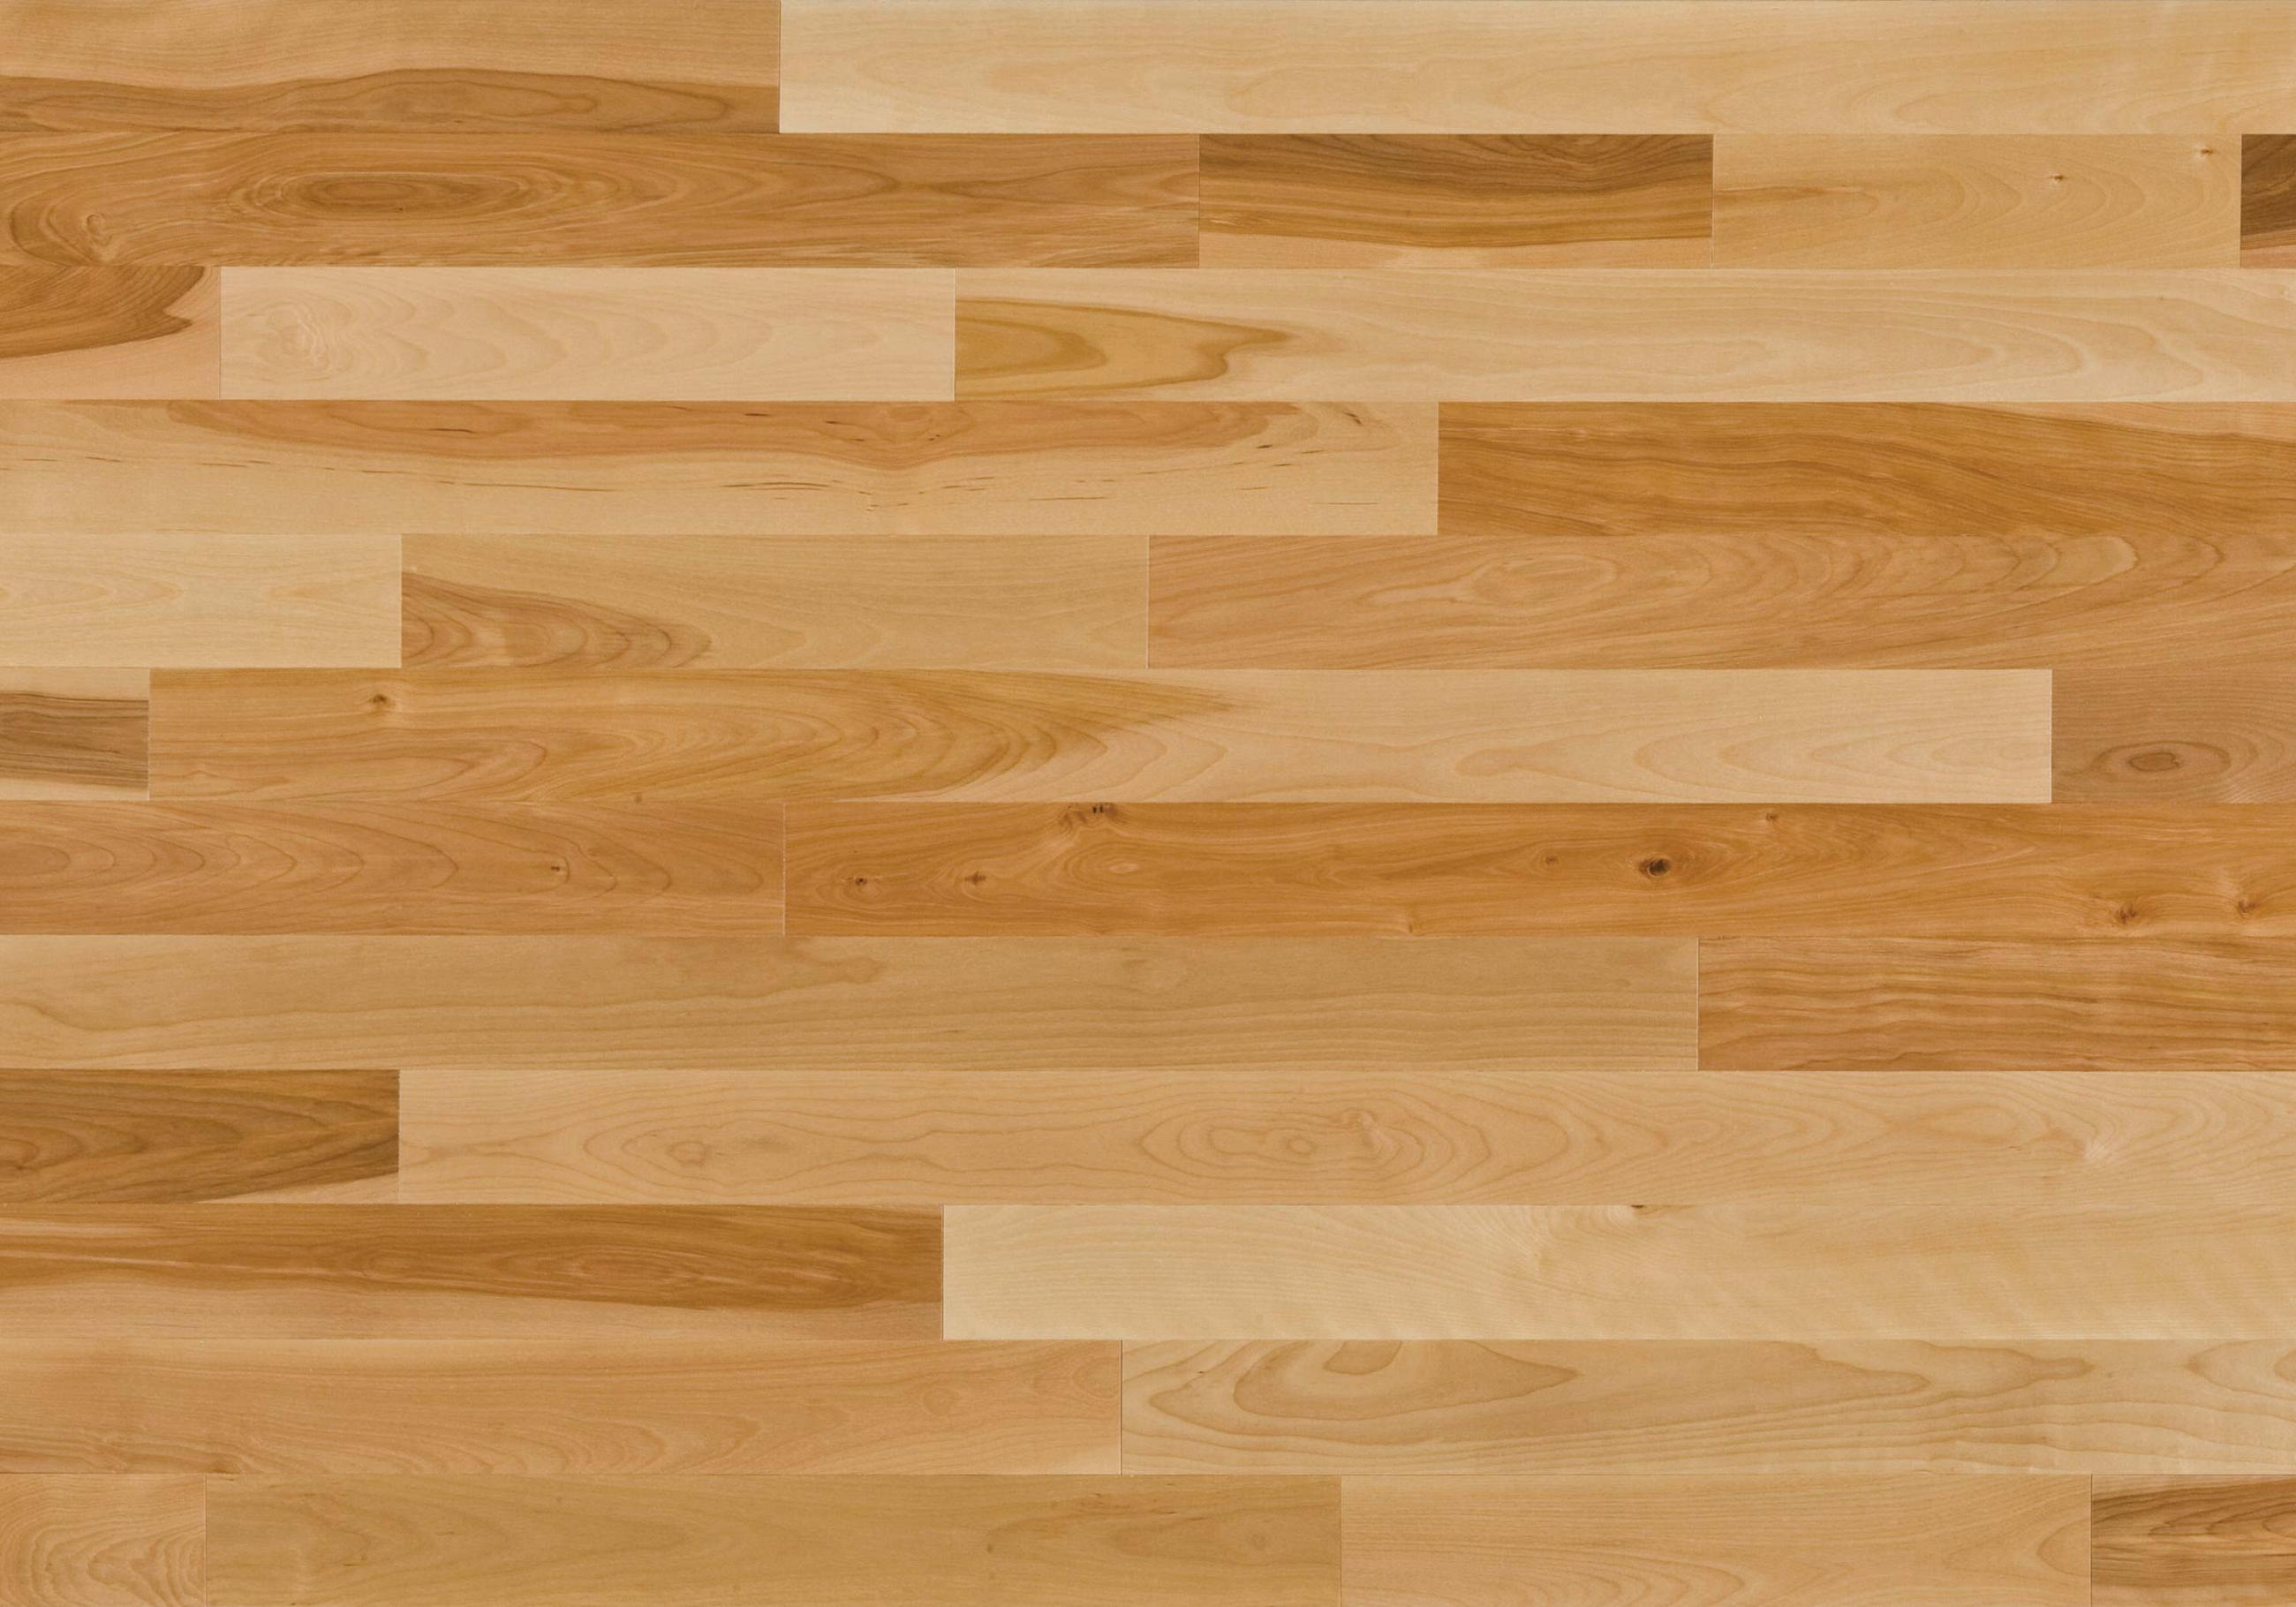 Creative Flooring Ideas For Your Kitchen in New York City